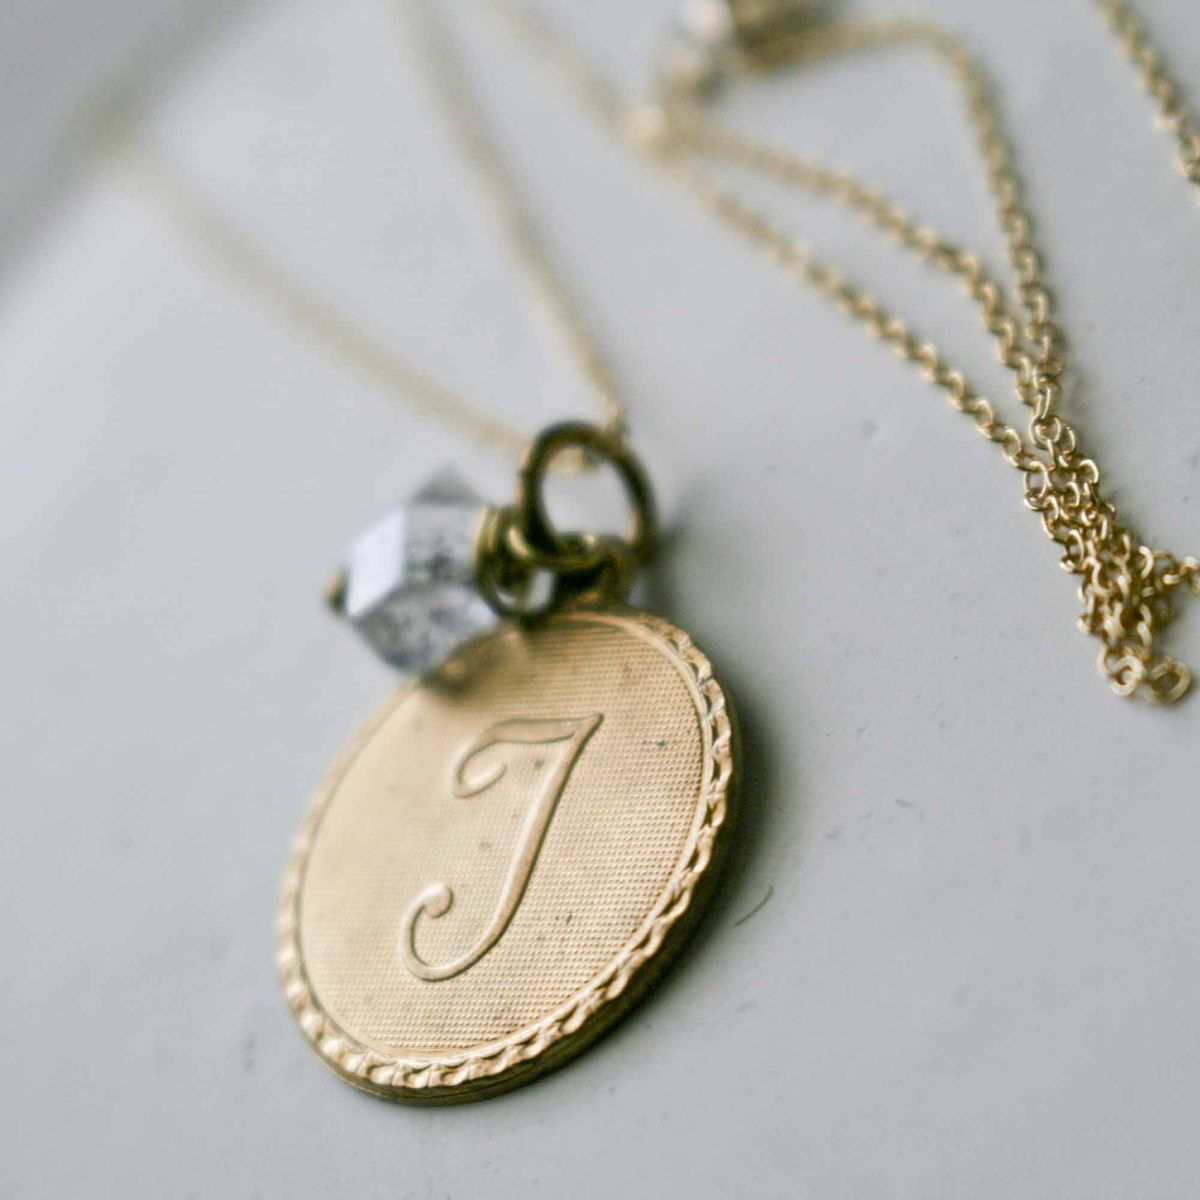 Uppercase Cursive Initial Monogram Letter Round Disc Charm Necklace For Most Current Letter Q Alphabet Locket Element Necklaces (View 12 of 26)